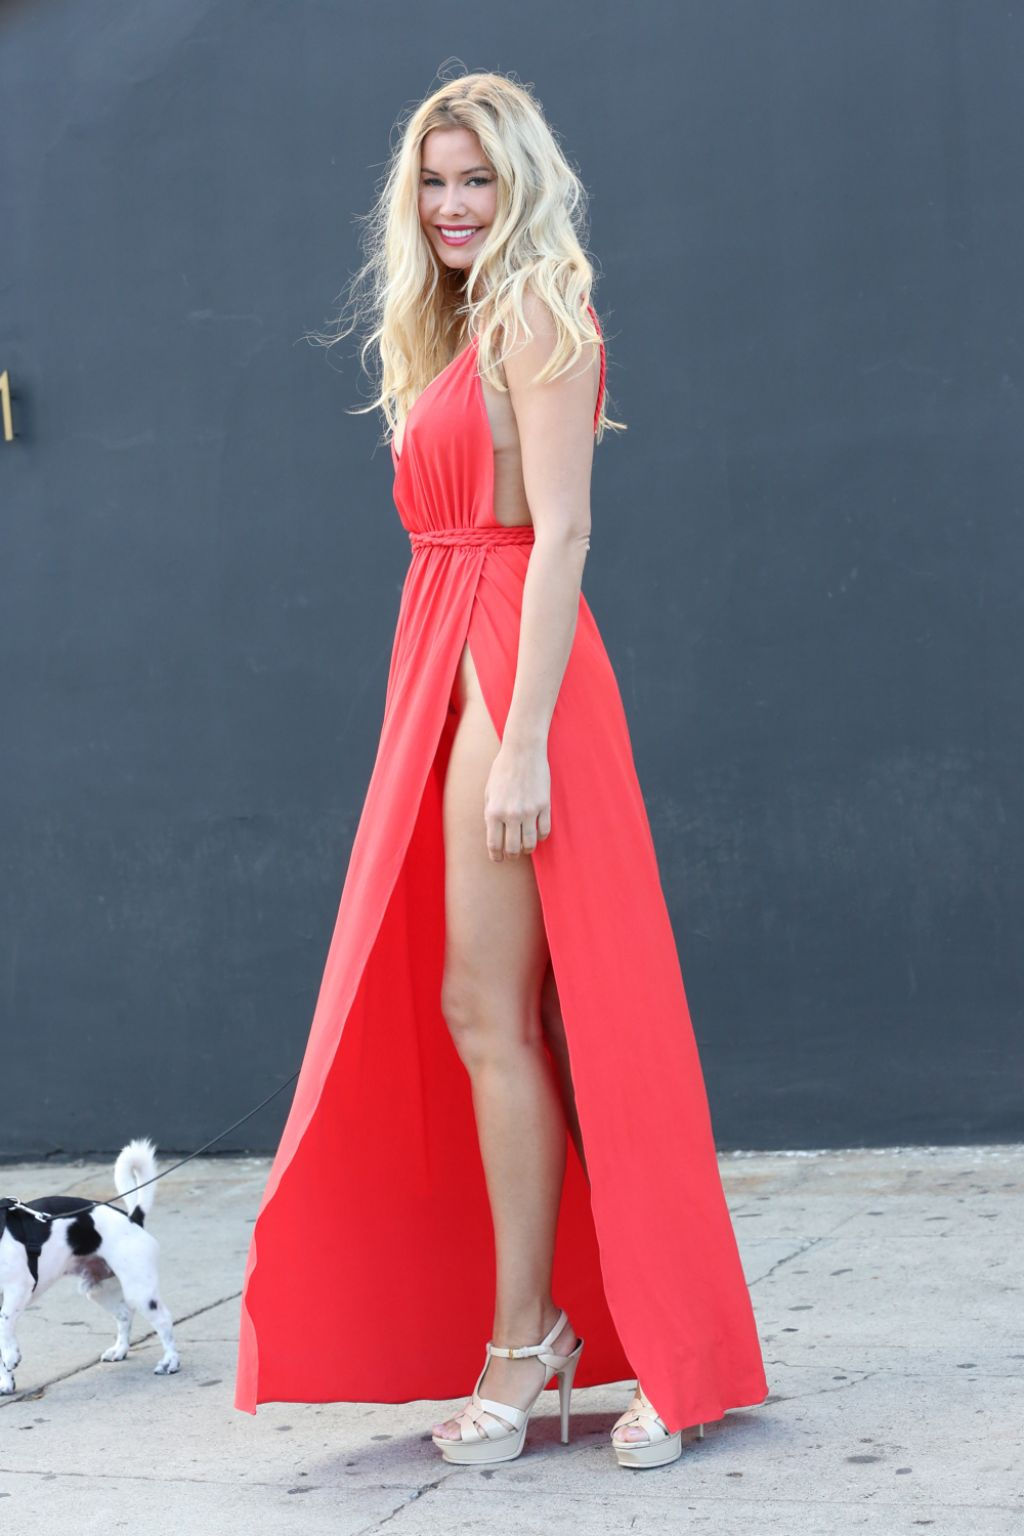 Kennedy Summers Walking With Her Dog In Hollywood